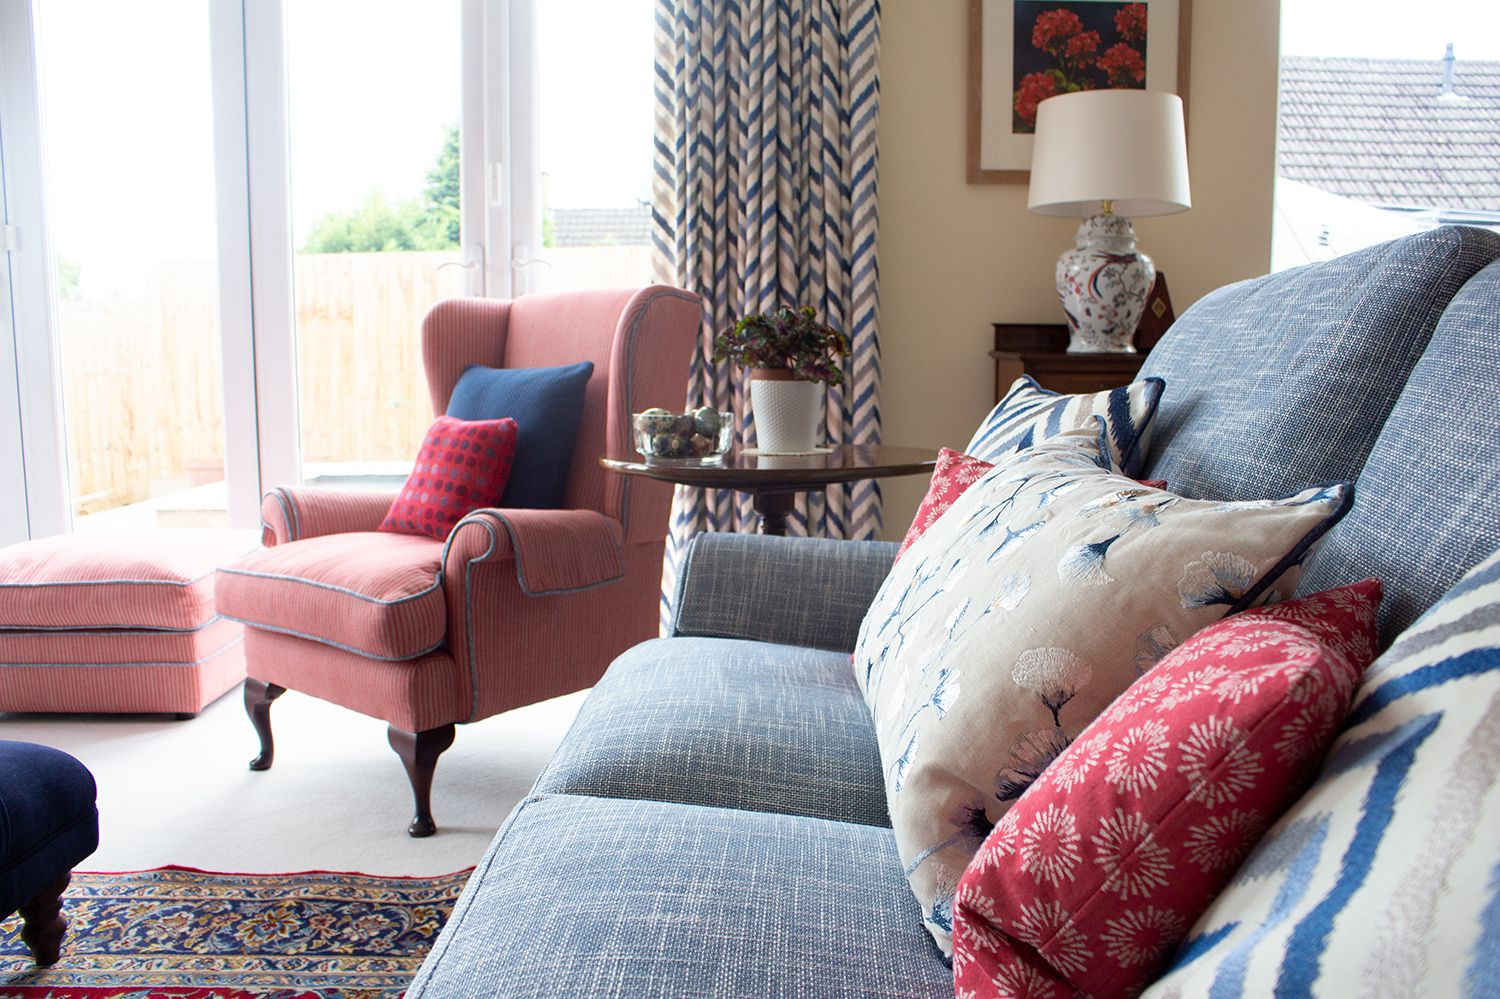 A view along the newly upholstered sofa to the wing chair, showing the red and blue cushions and the new curtains in the background.